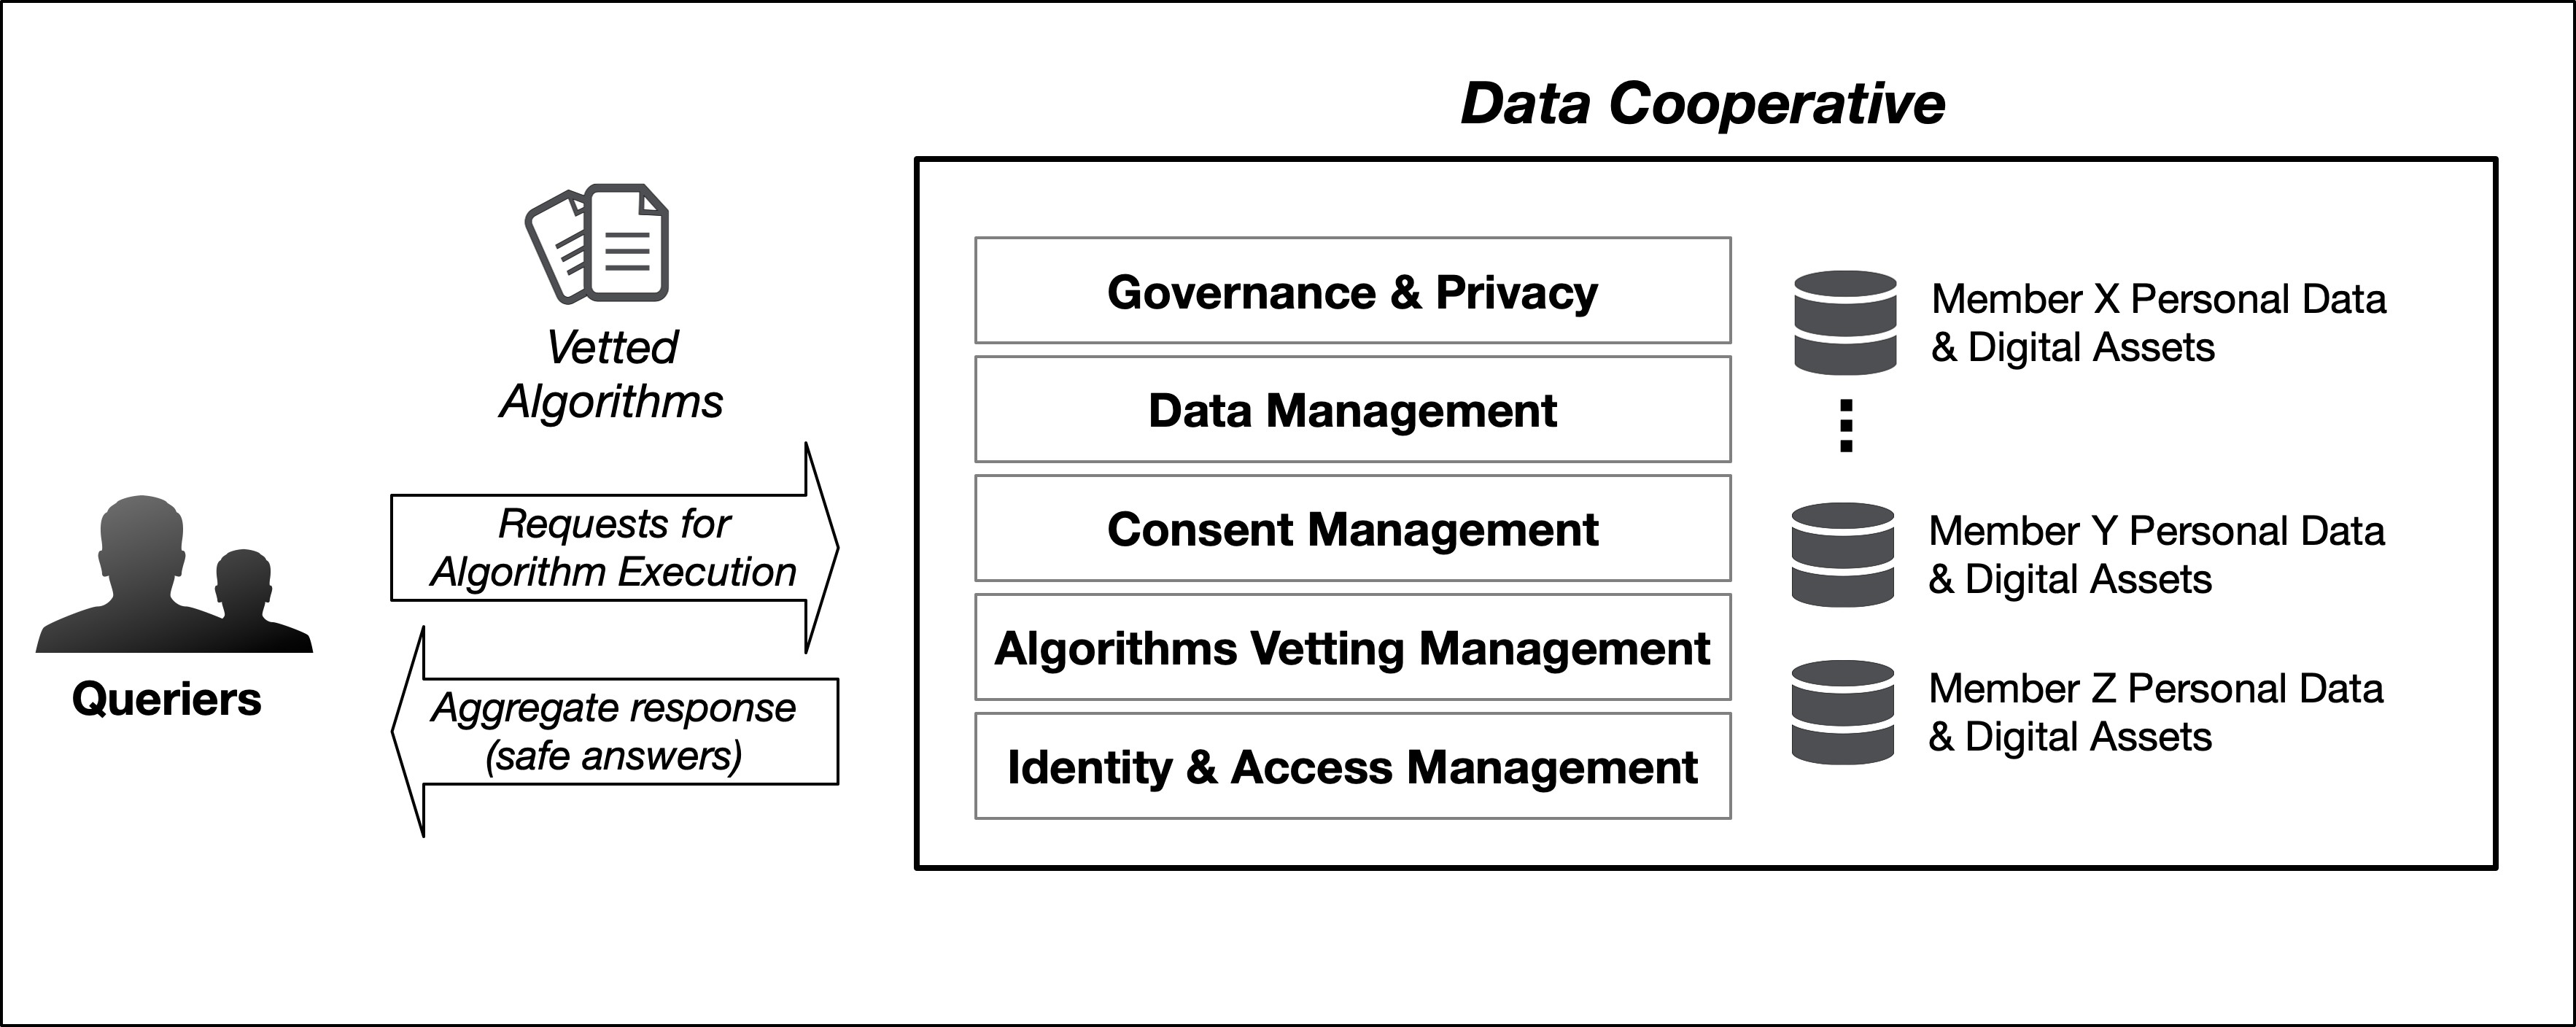 <p>Figure 1: Overview of the Data Cooperative based on the MIT Open Algorithms principles</p>